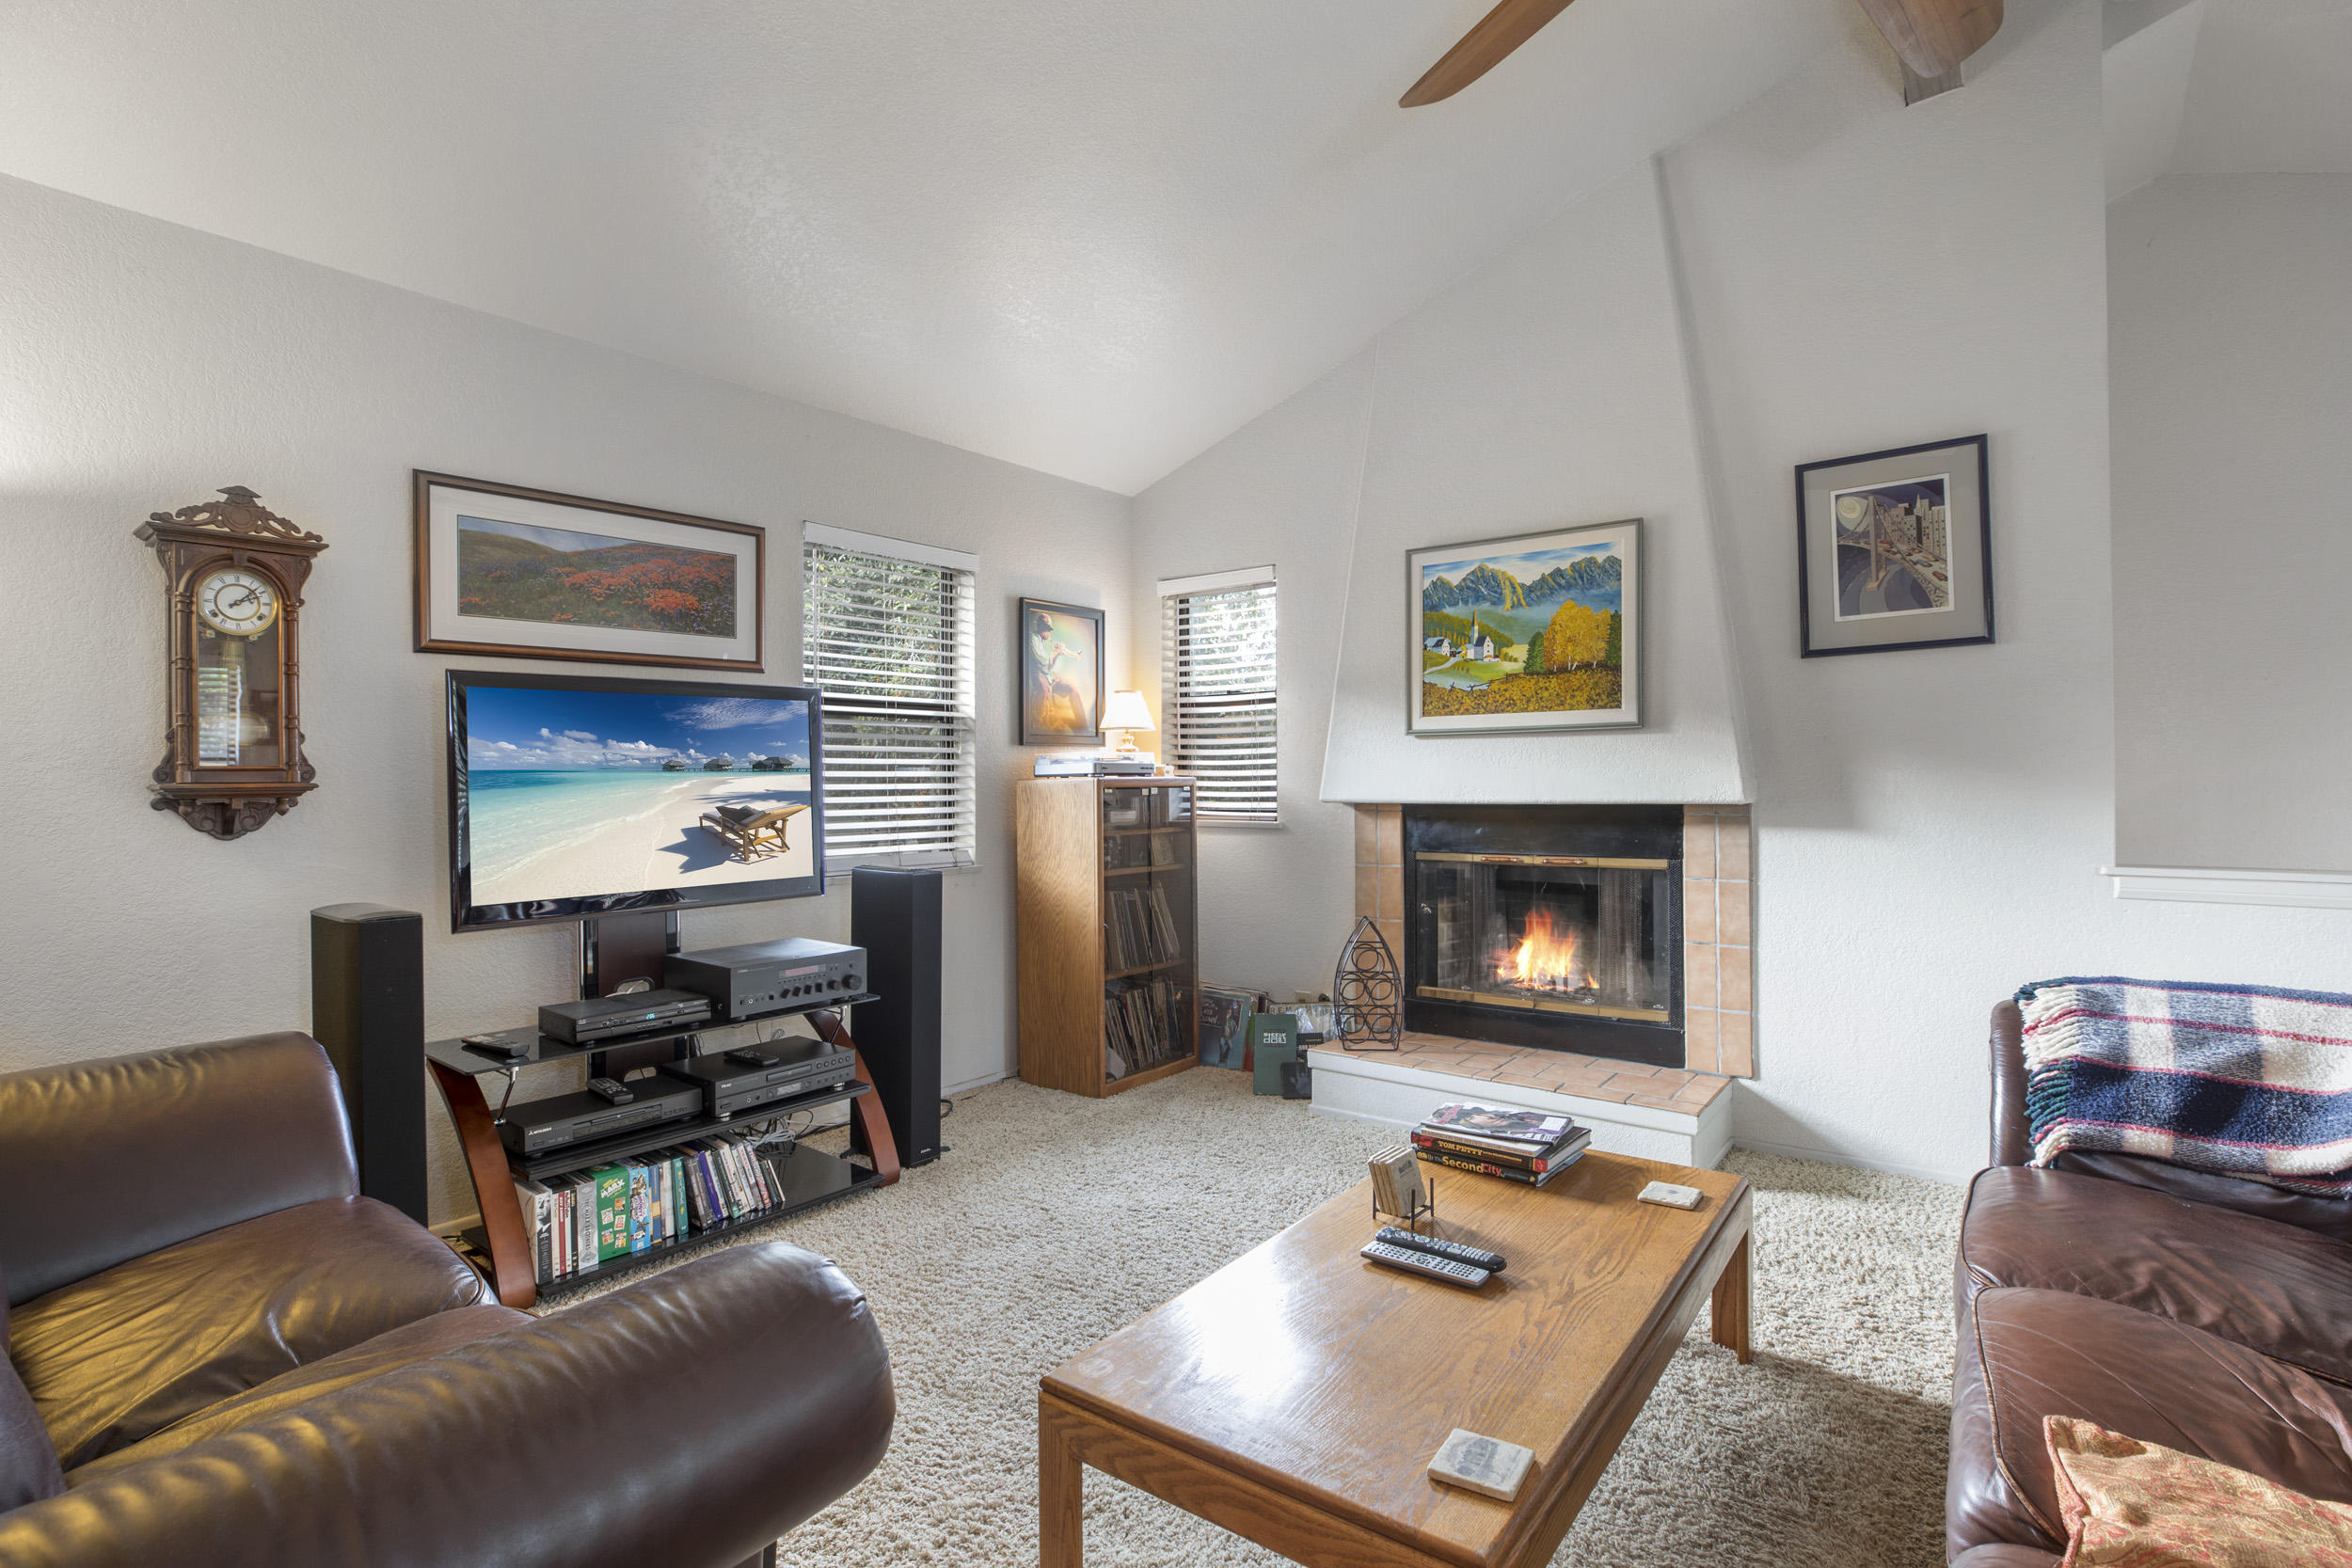 Property photo for 620 W Carrillo St #B Santa Barbara, California 93101 - 18-4205